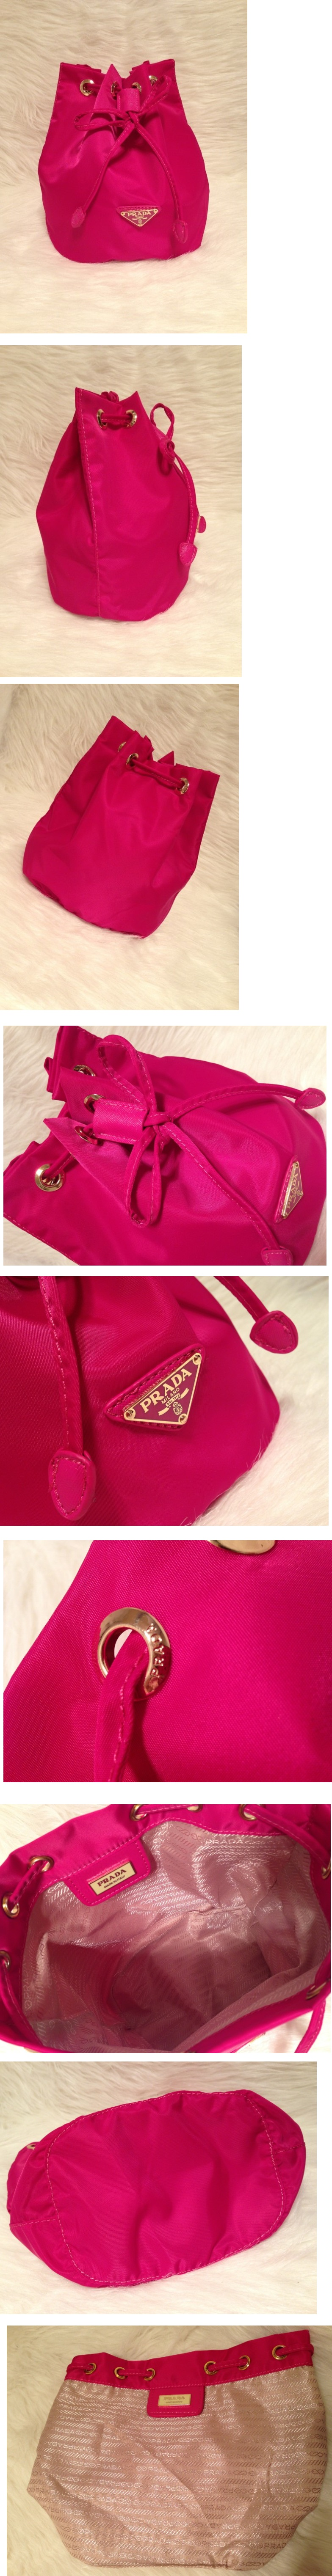 LIMITED EDITION PRADA LADY MINI COSMETIC BAG